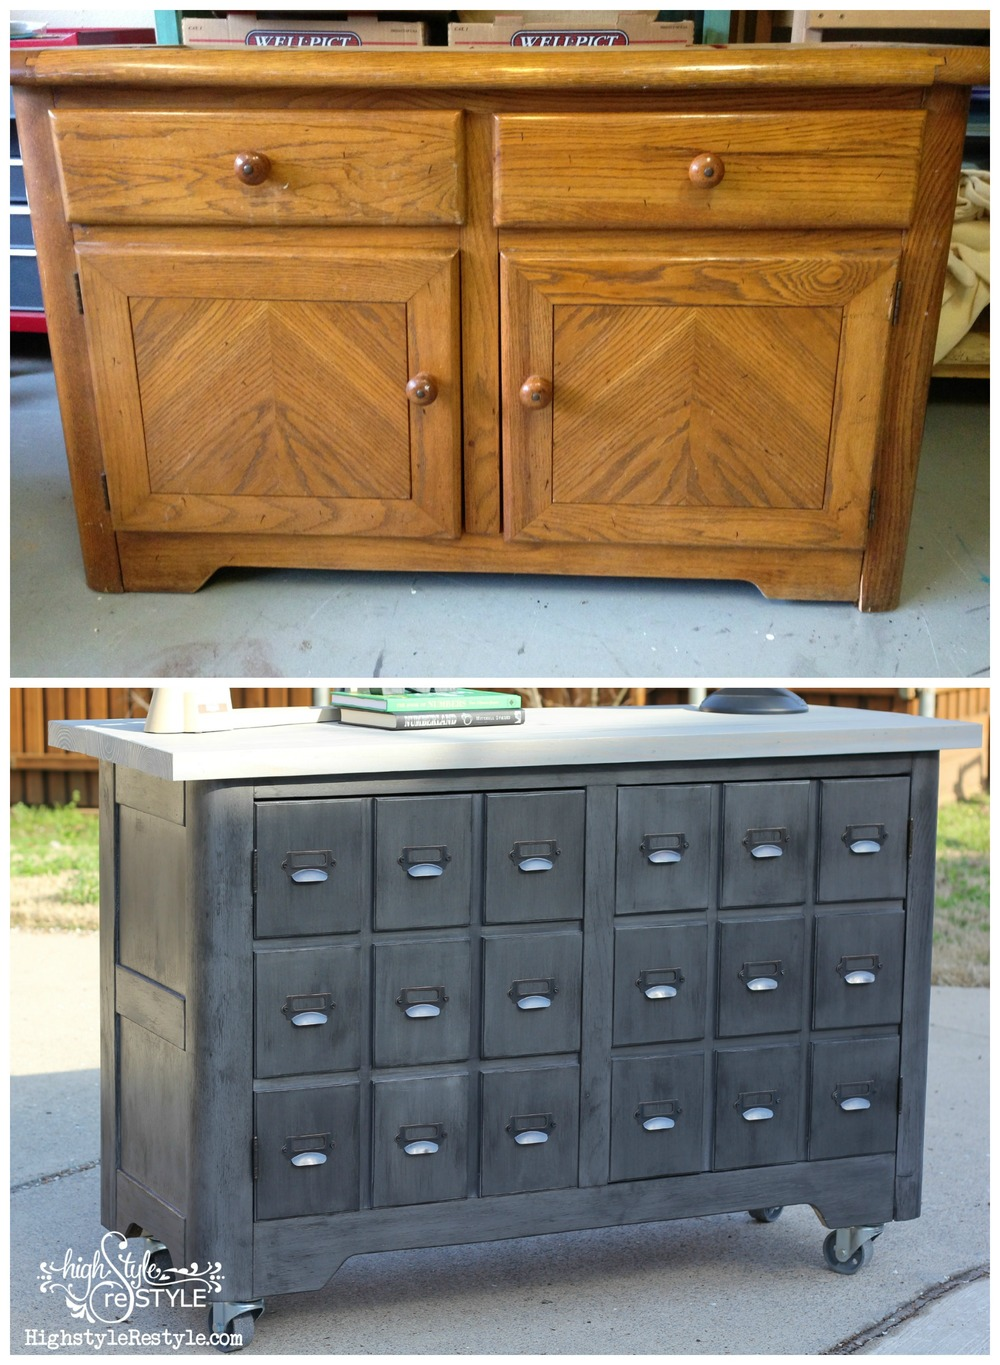 10 Beautiful Upcycled Furniture Projects Highstyle Restyle